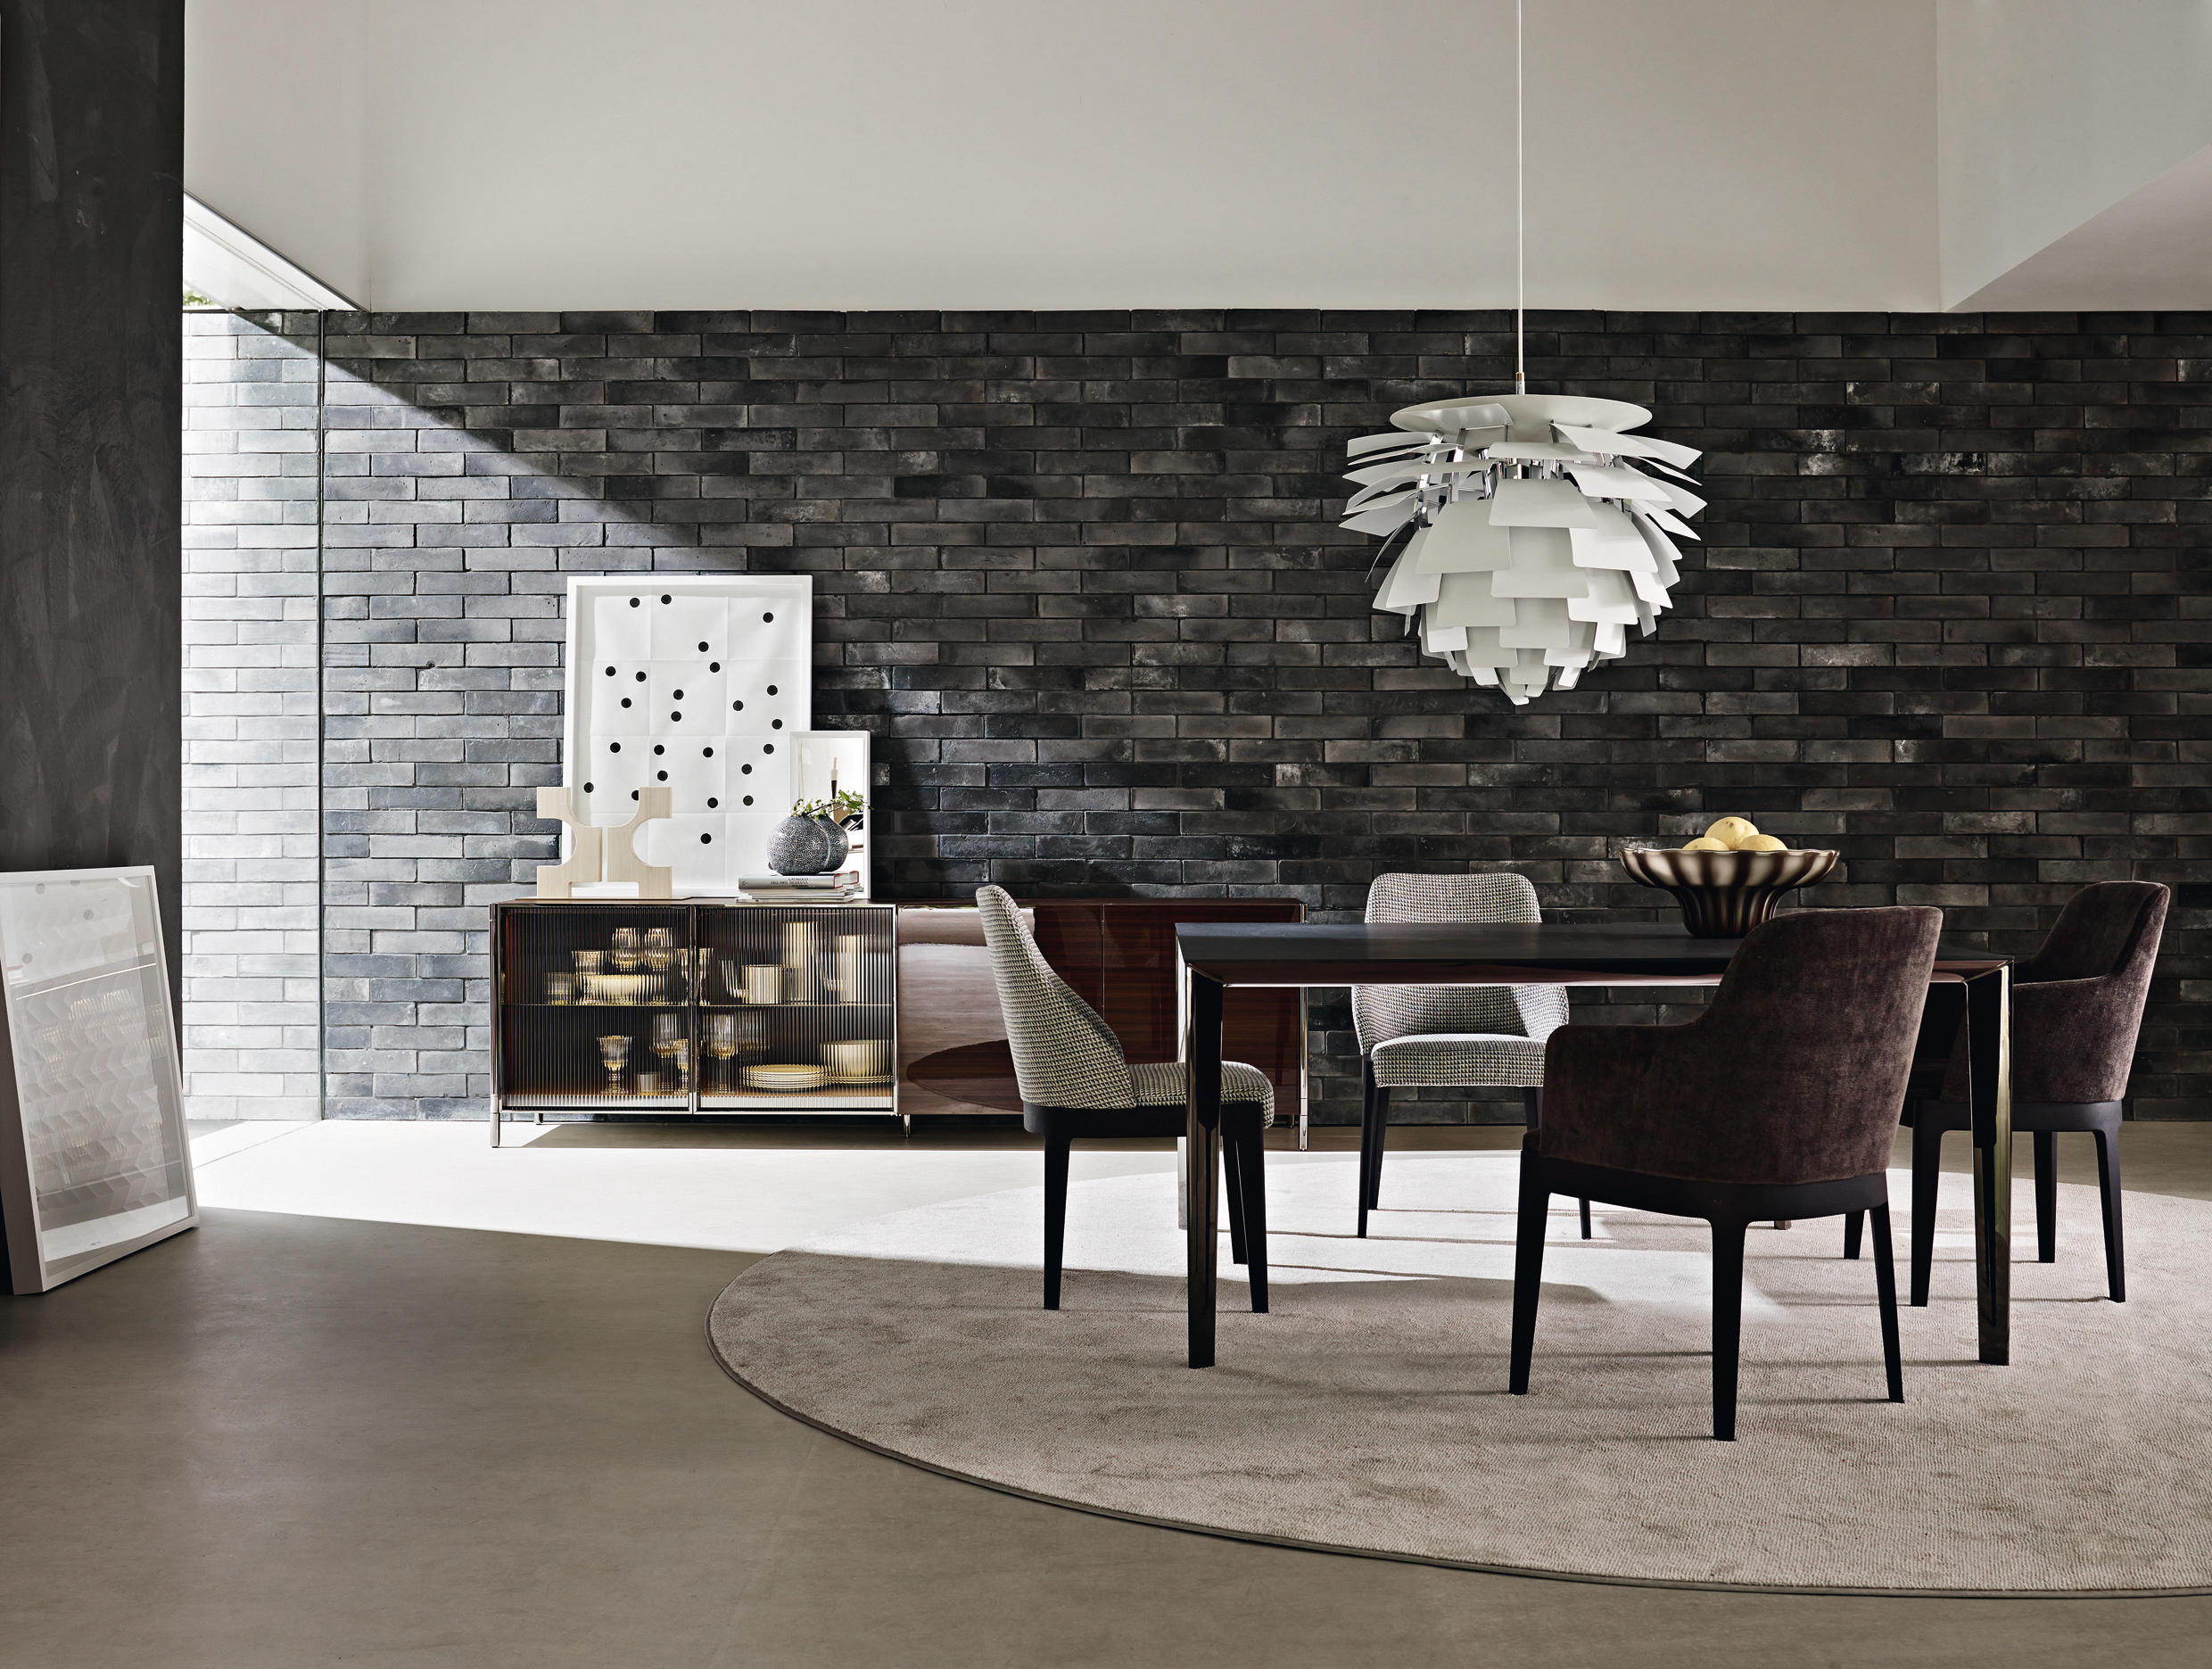 chelsea chair restaurant chairs from molteni c architonic. Black Bedroom Furniture Sets. Home Design Ideas